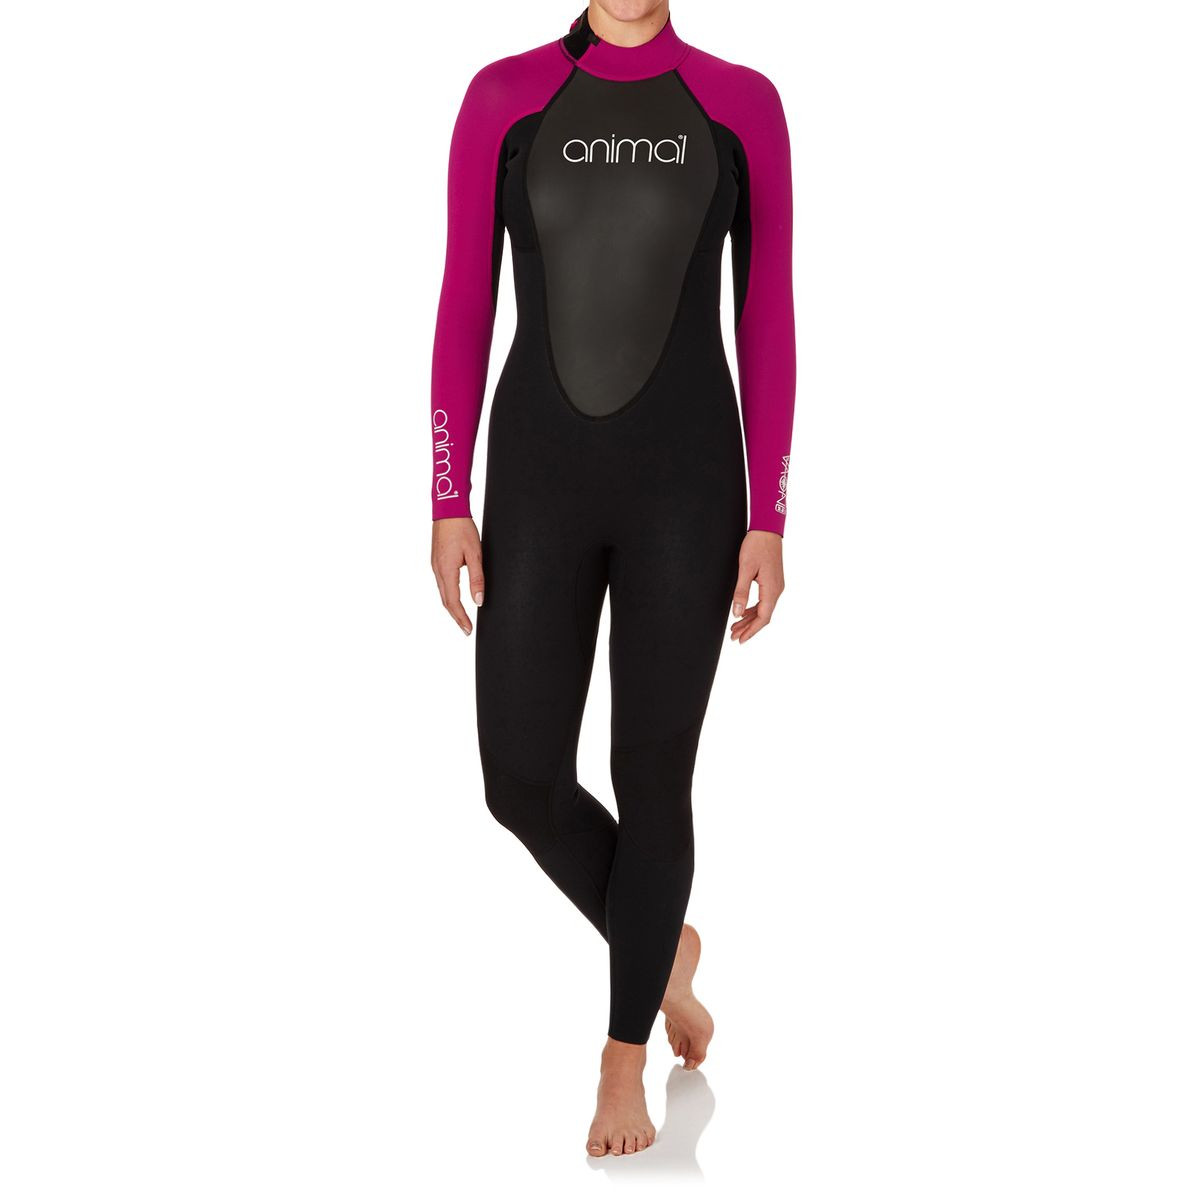 Animal Womens Nova 3/2mm Back Zip Wetsuit - Indian Berry Pink